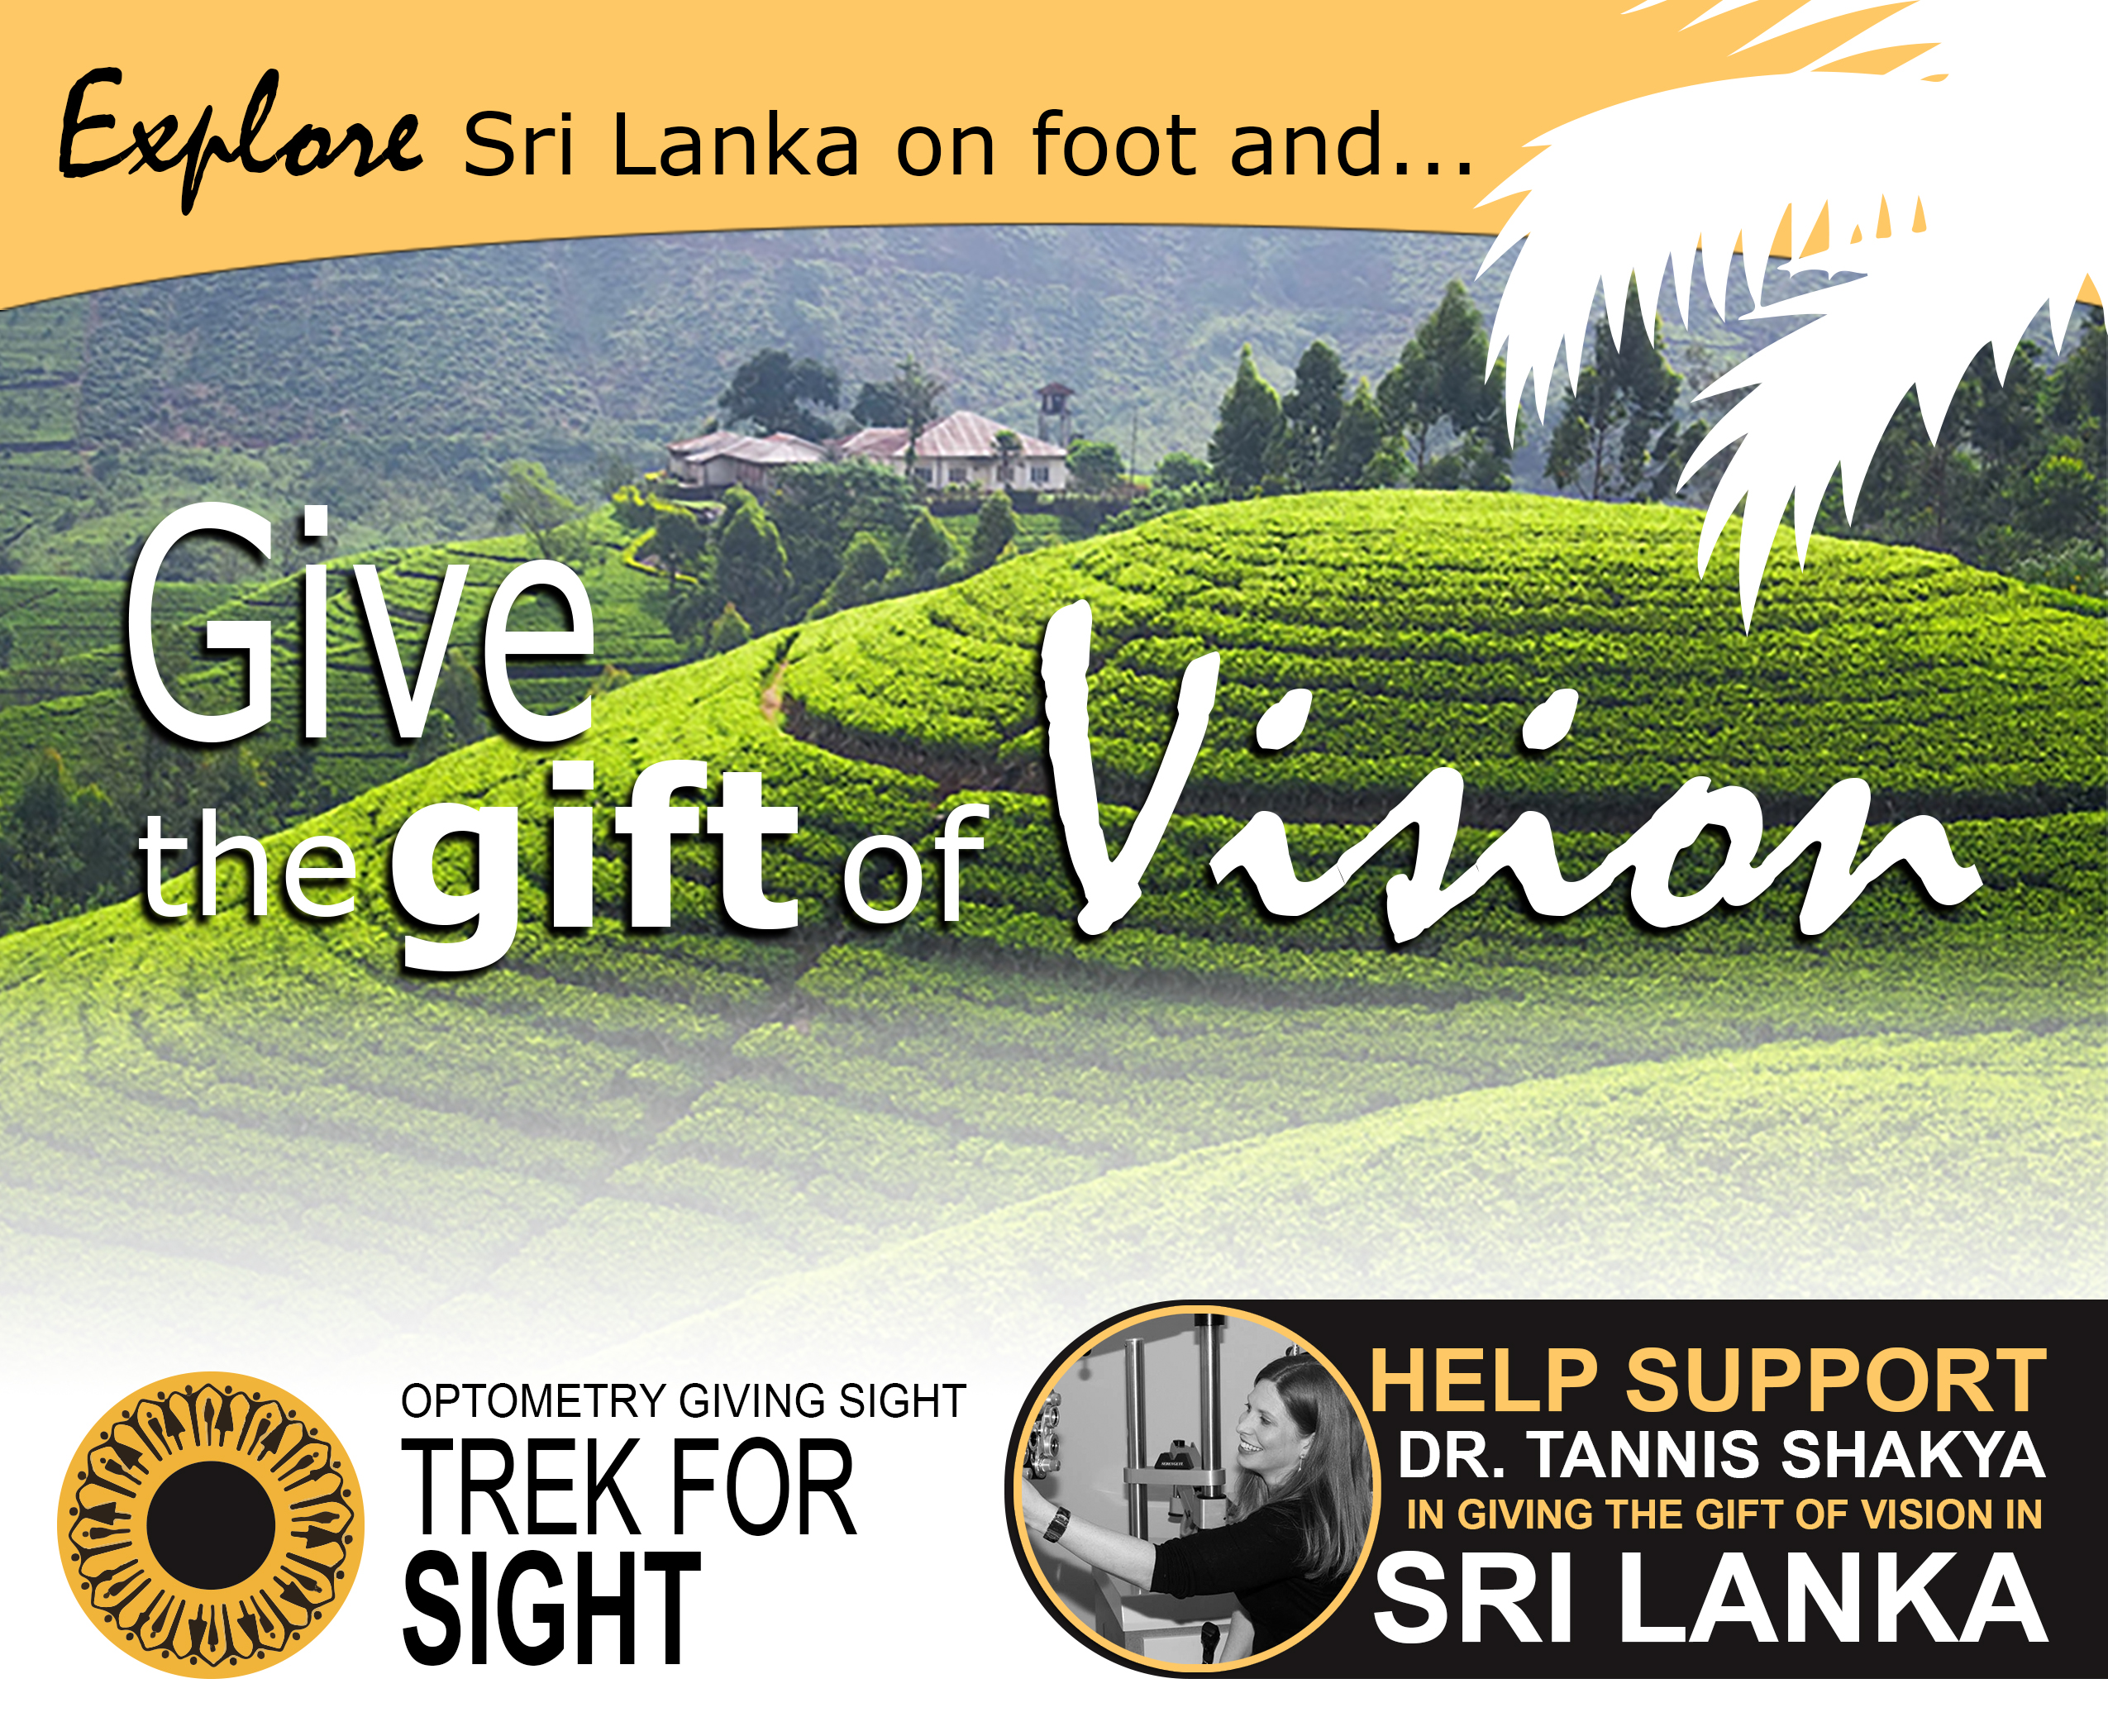 SRI LANKA header image for website